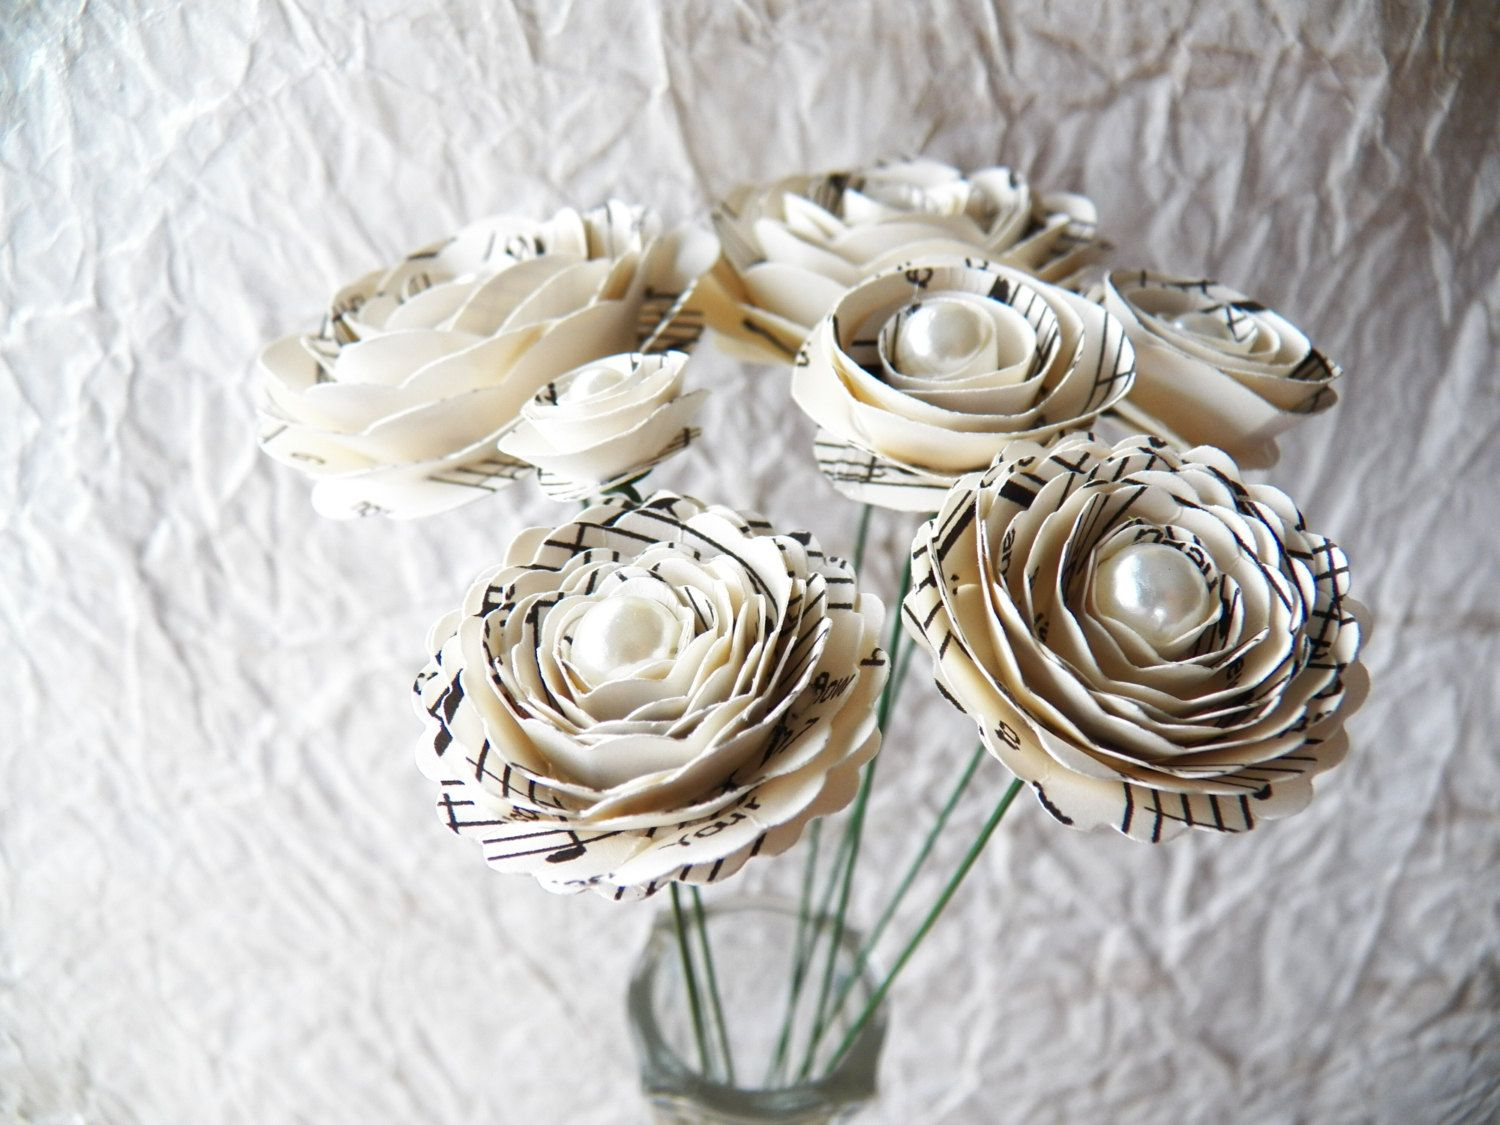 Music Note Stemmed Paper Flowers Via Etsy All About Music